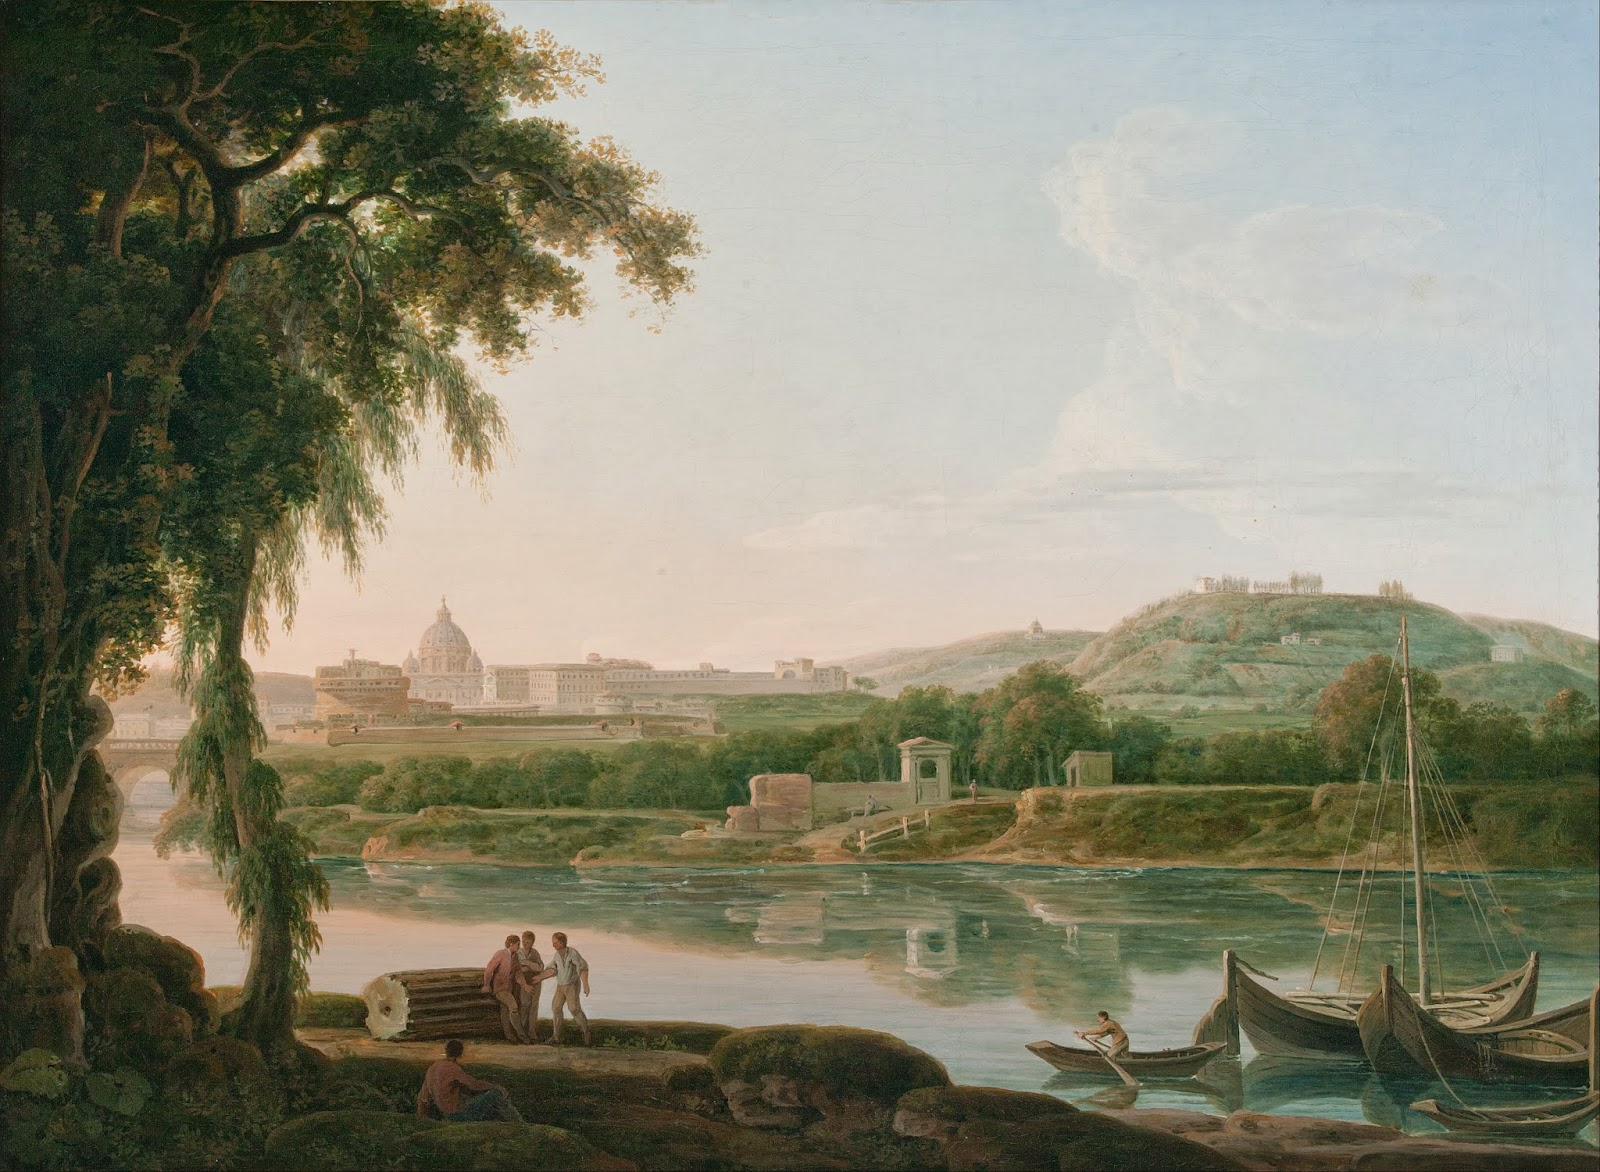 4 Jacob_More_-_A_distant_view_of_Rome_across_the_Tiber_-_Google_Art_Project.jpg